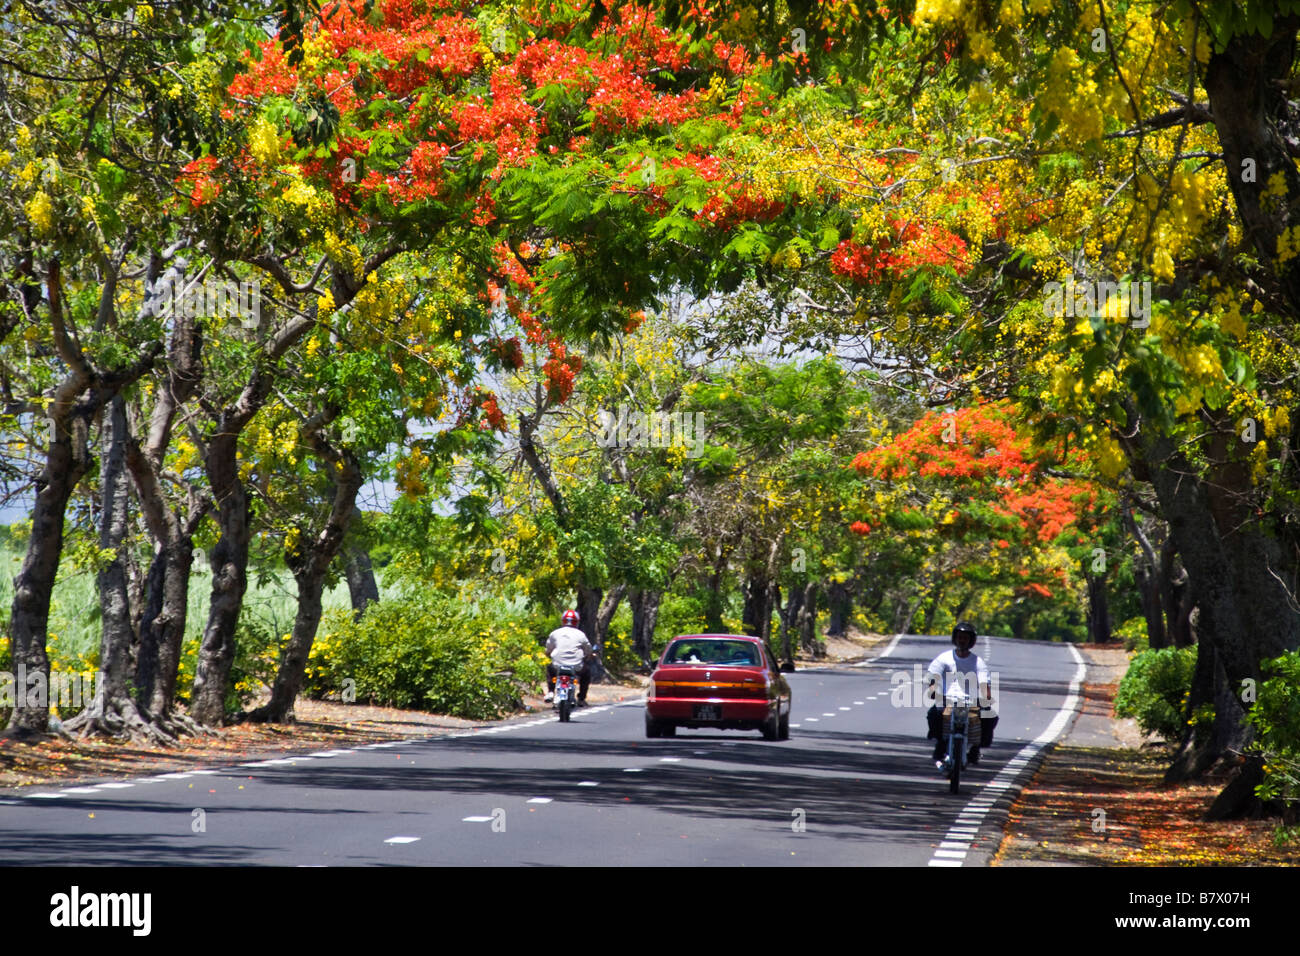 Tree Alley with Flamboyant Royal Poinciana and Lamburnum trees with yellow flowers Mauritius Africa - Stock Image